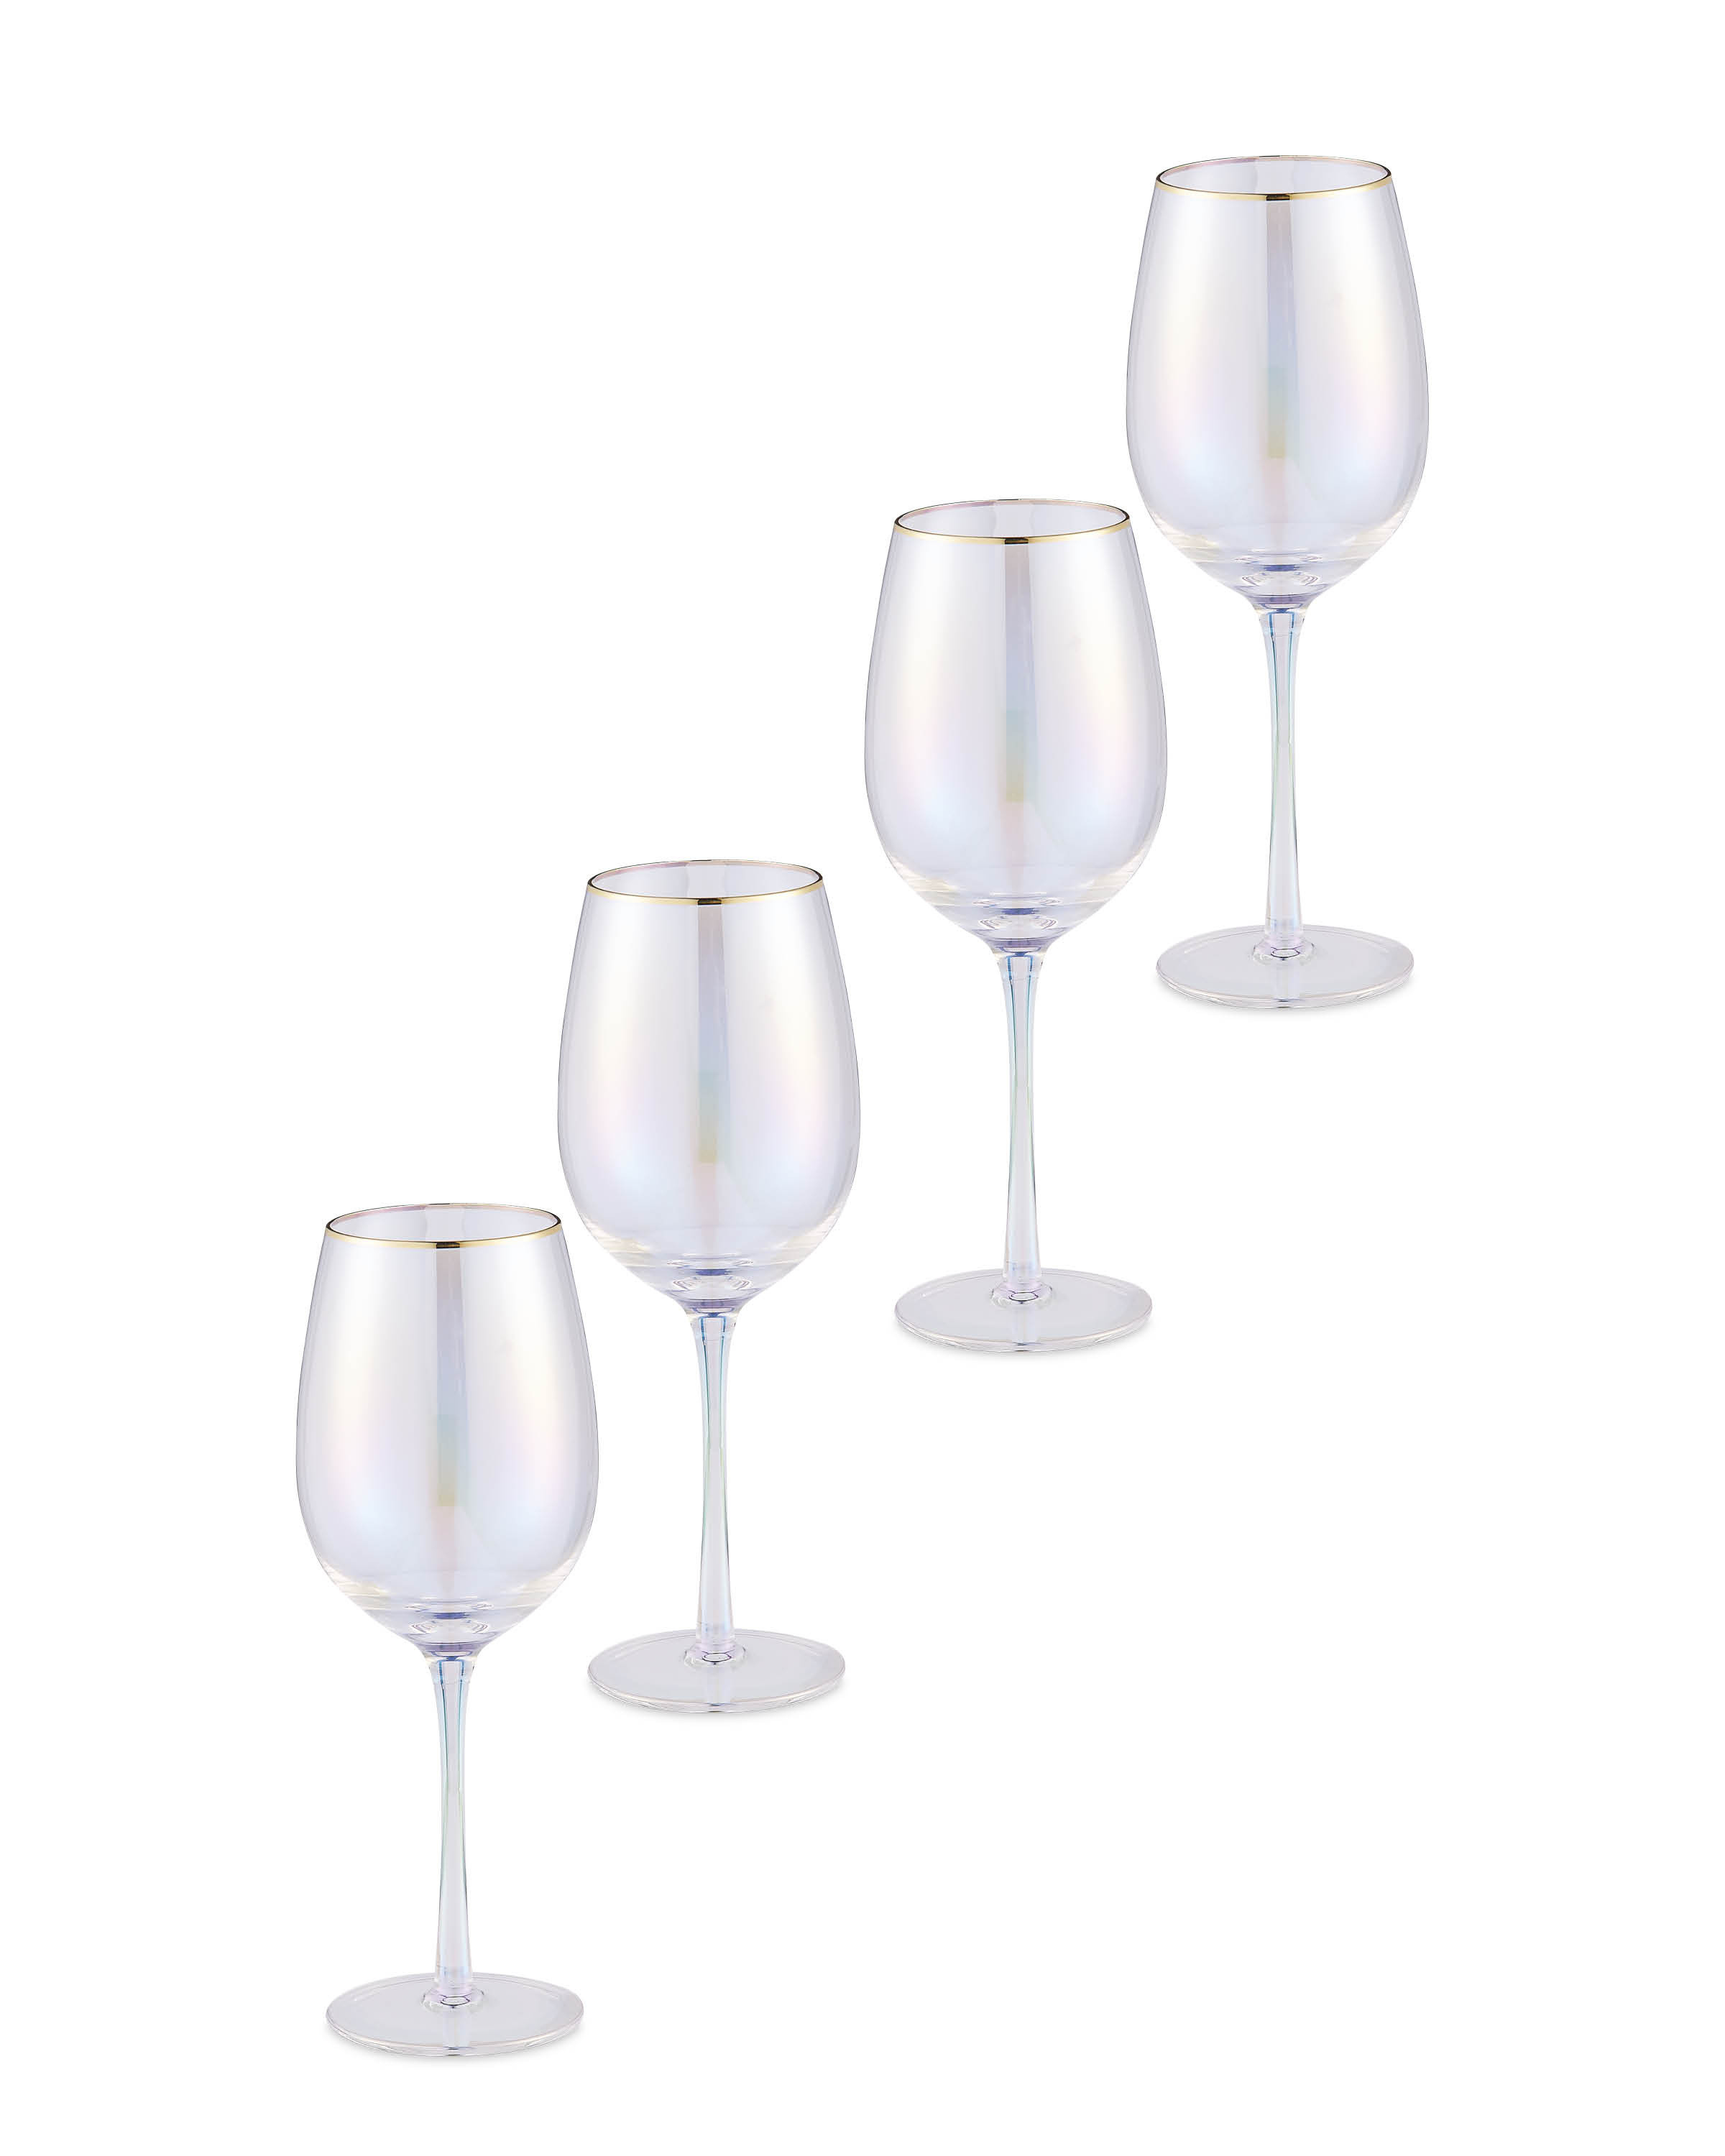 Pearlescent Wine Glasses 4 Pack